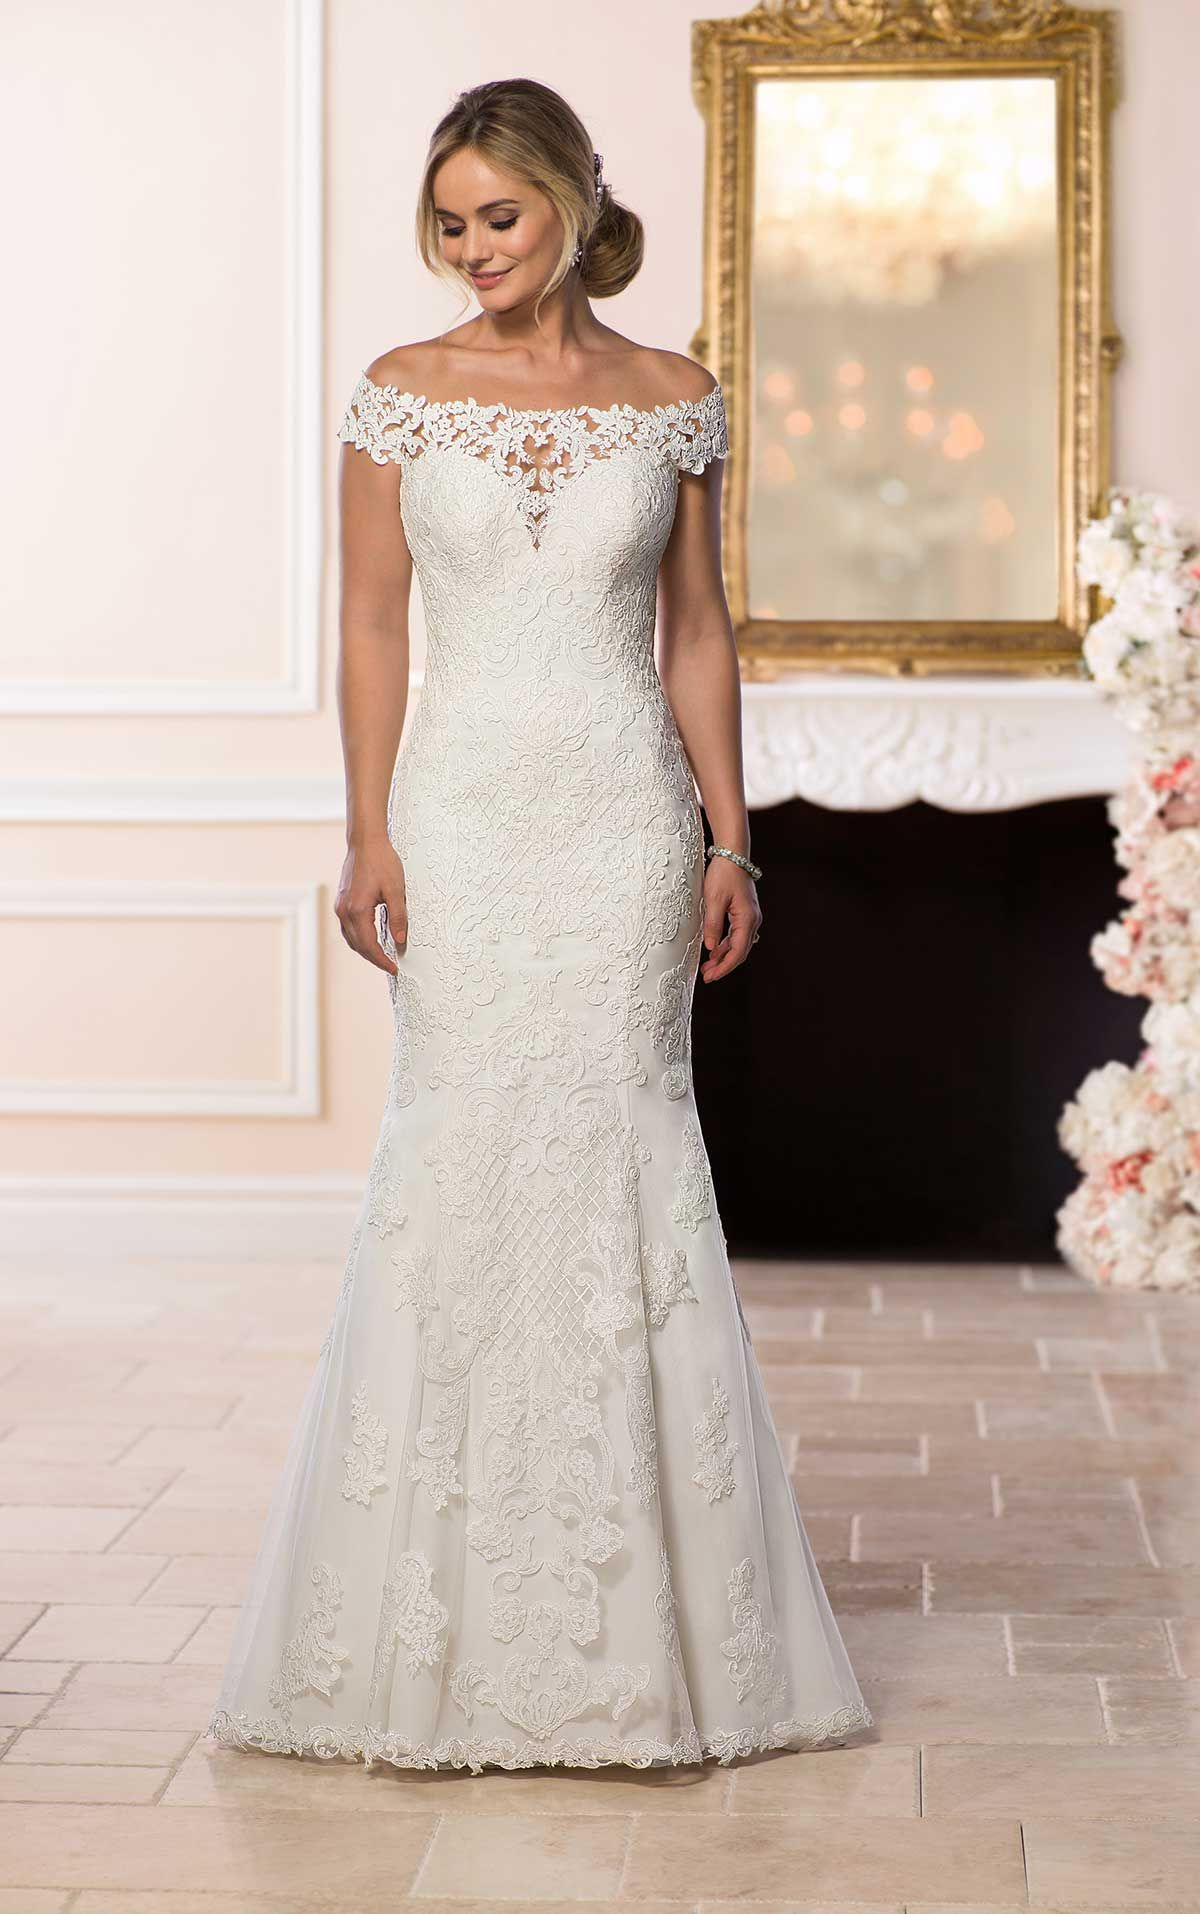 Bohemian Lace Wedding Gown   Stella york, Shoulder sleeve and ...